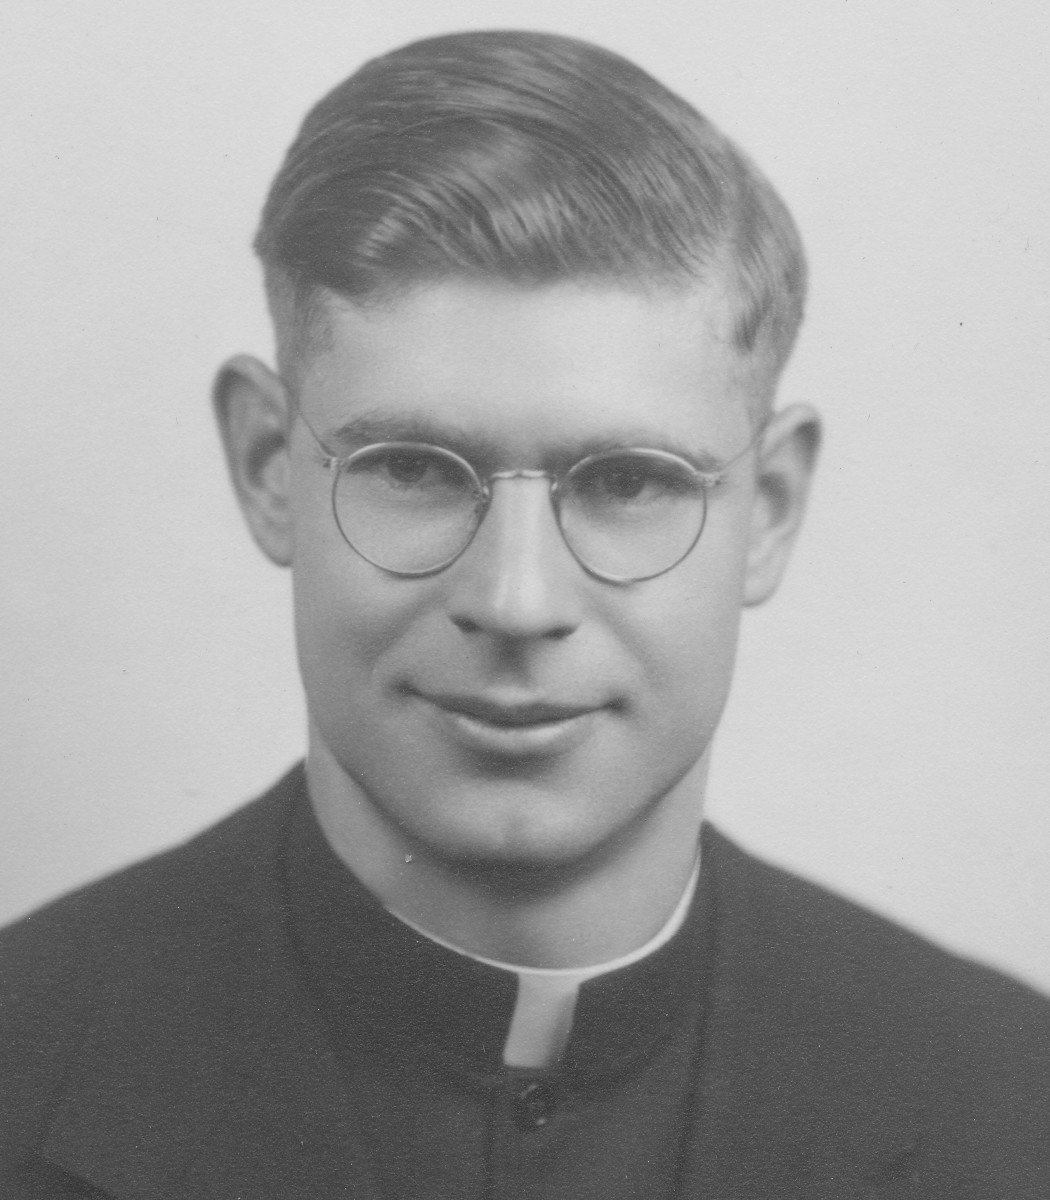 Father Donald McDonnell